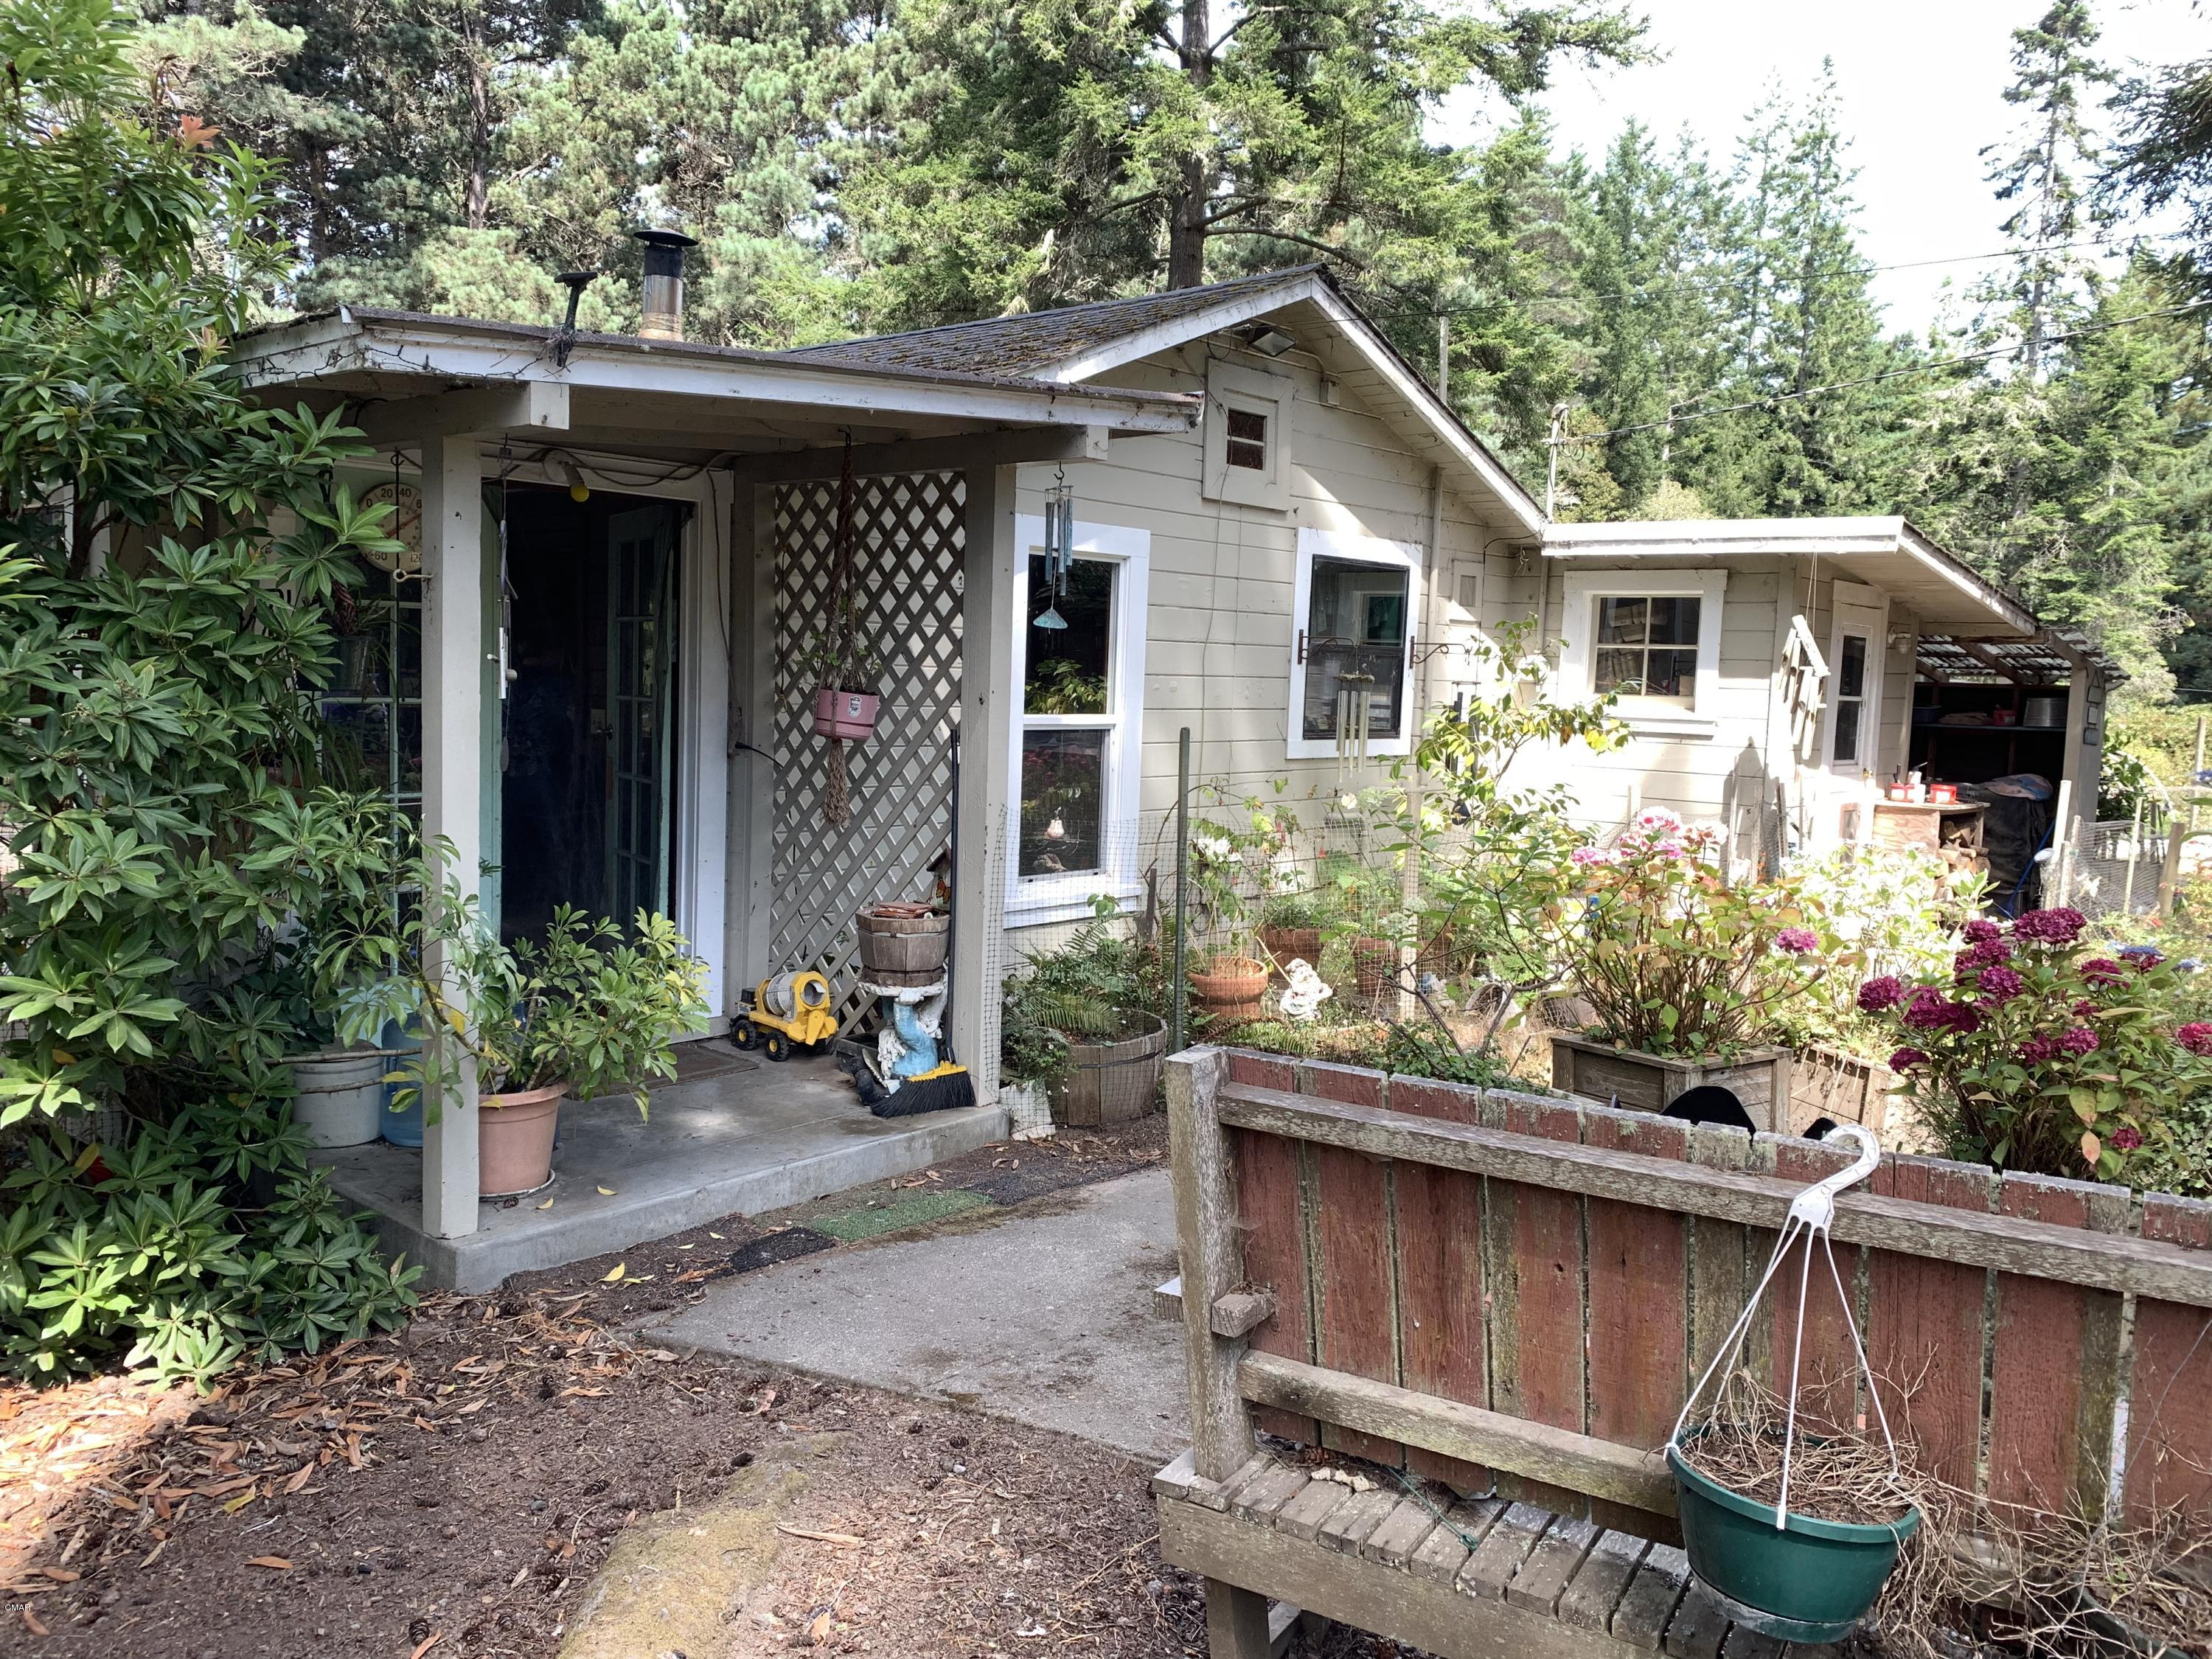 MUST SEE! 2.5 Acres with house for 400K!!! New Windows, new paint, new flooring,  the works. 2.5 lovely sunbelt acres, 1 cute house with 3 bedrooms- or 2 Bedrooms and an office (Two bedrooms have walk in closets)  AND 2 large detached shops, green house, huge chicken coop and more.  Lovely fenced garden areas, property extends down to Digger Creek. Walk to forested trails, close to town yet worlds away.